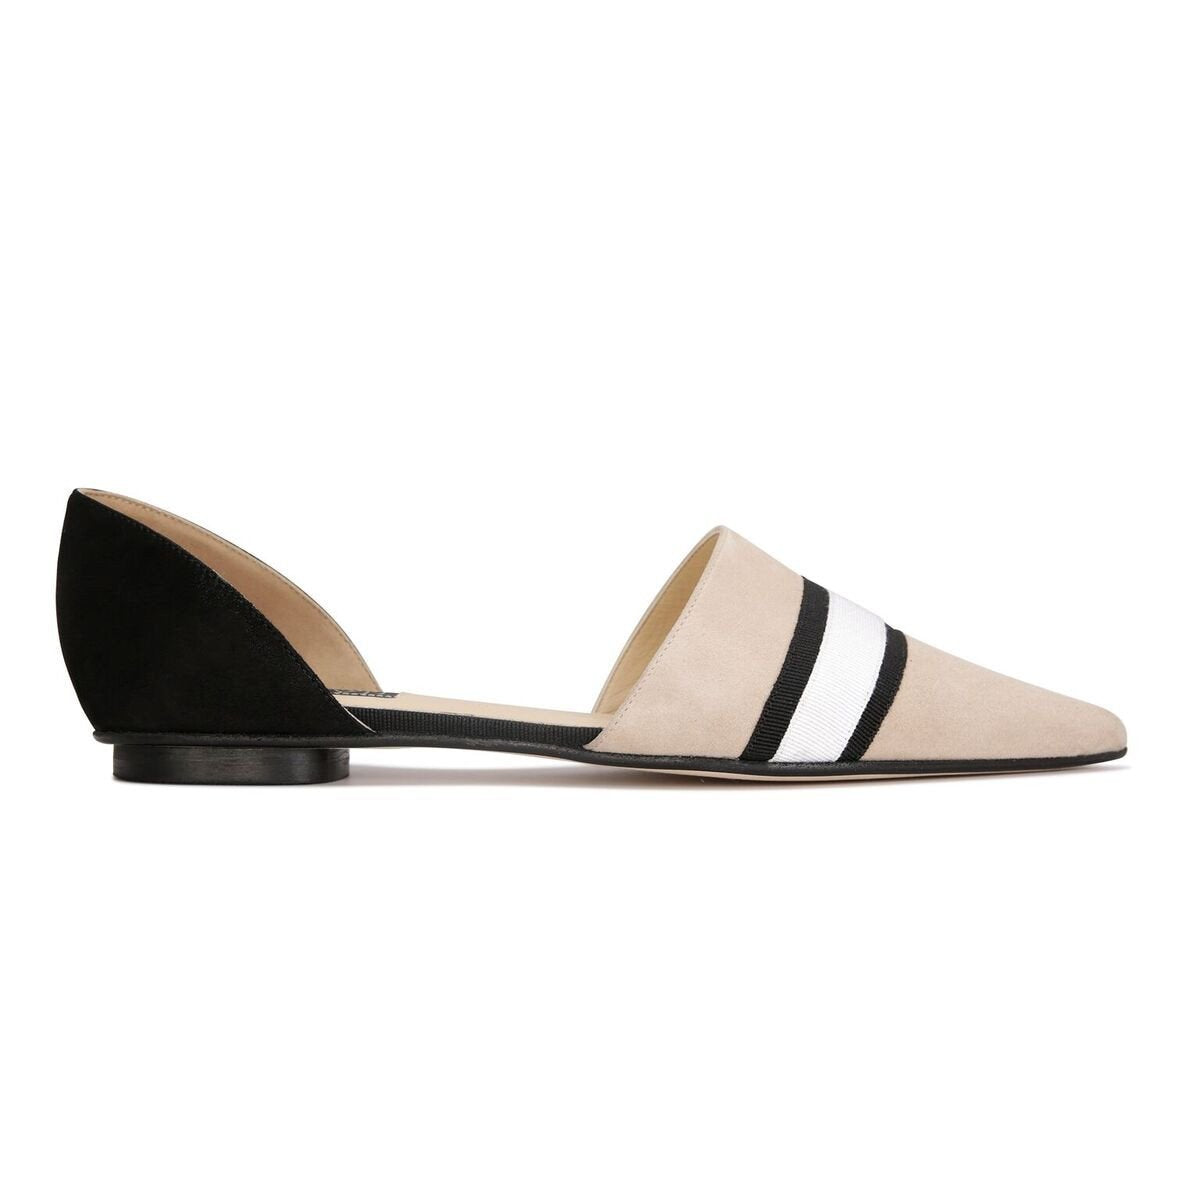 ELBA - Velukid Tan with Gros Stripes + Hydra Nero, VIAJIYU - Women's Hand Made Sustainable Luxury Shoes. Made in Italy. Made to Order.